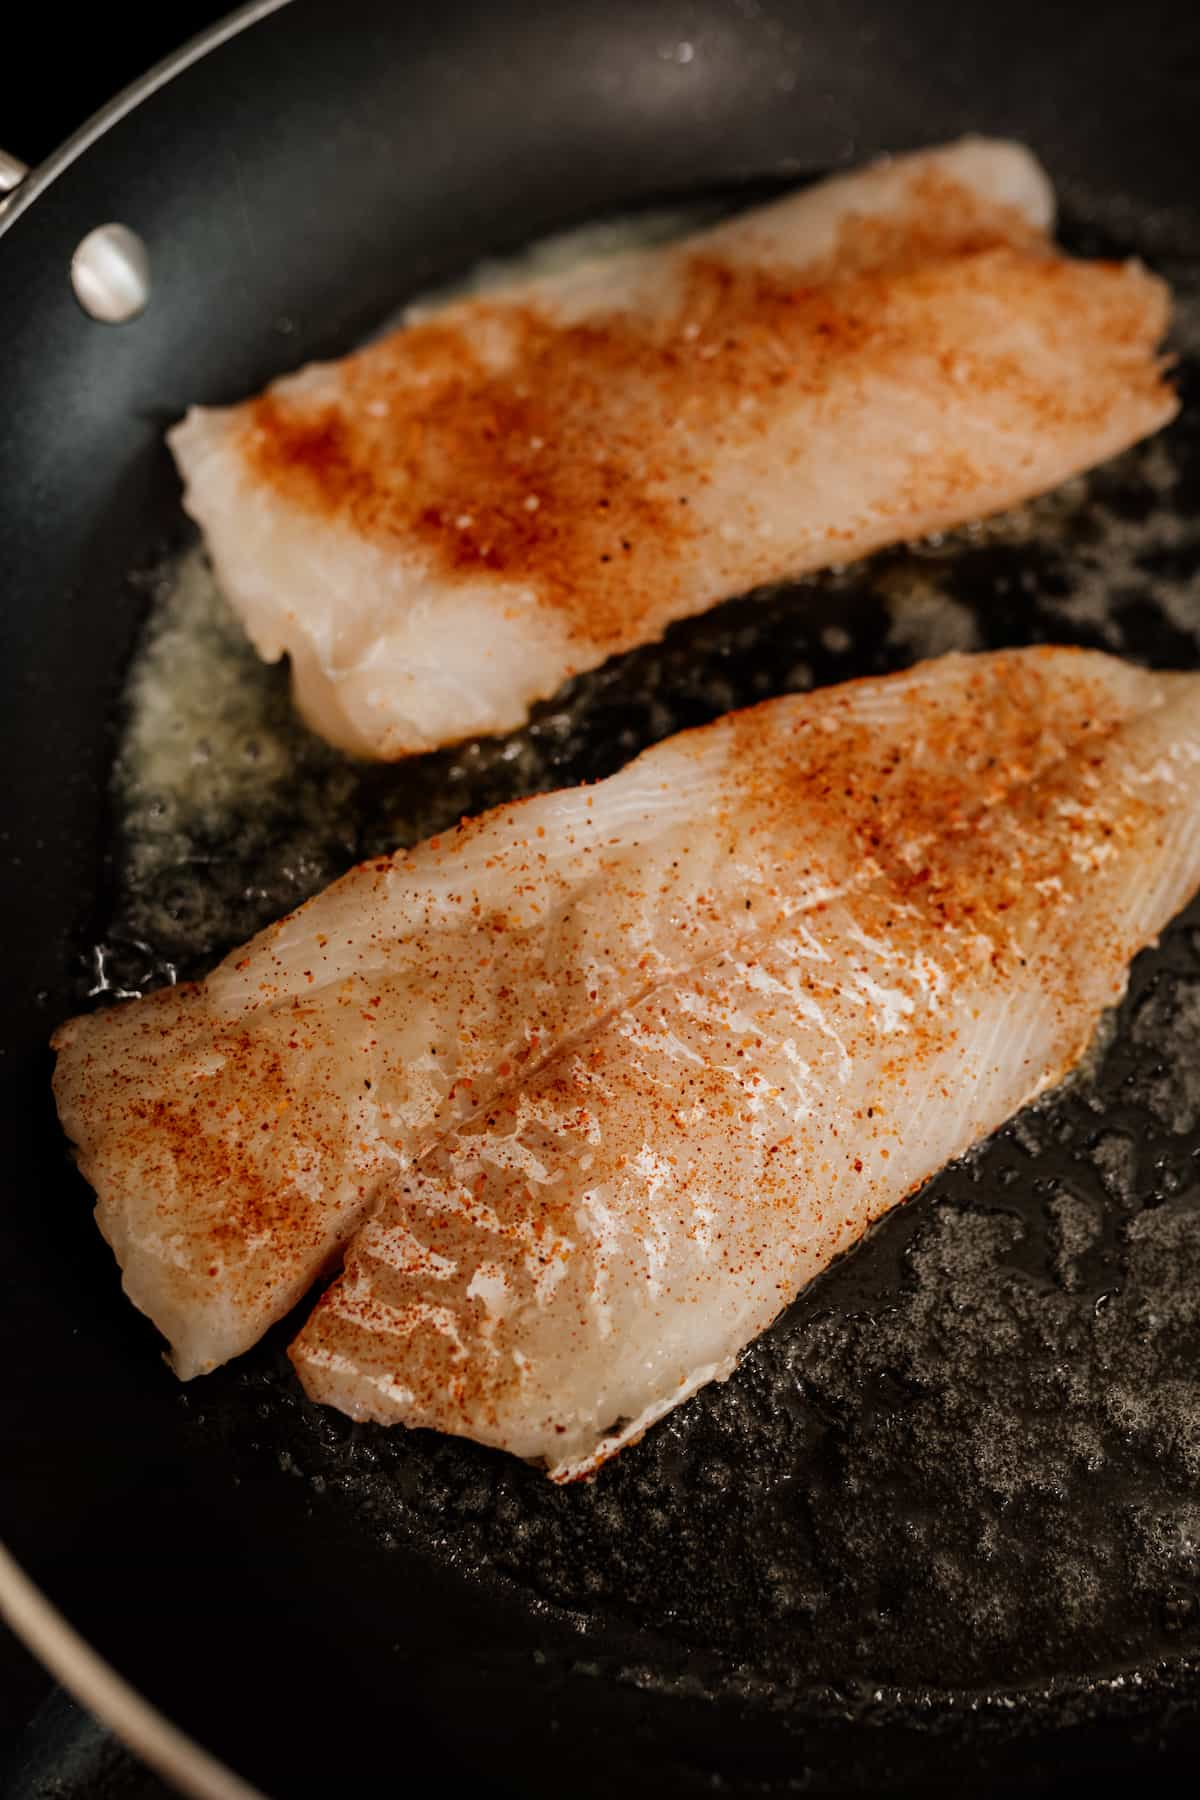 cod fish being cooked on a skillet with butter